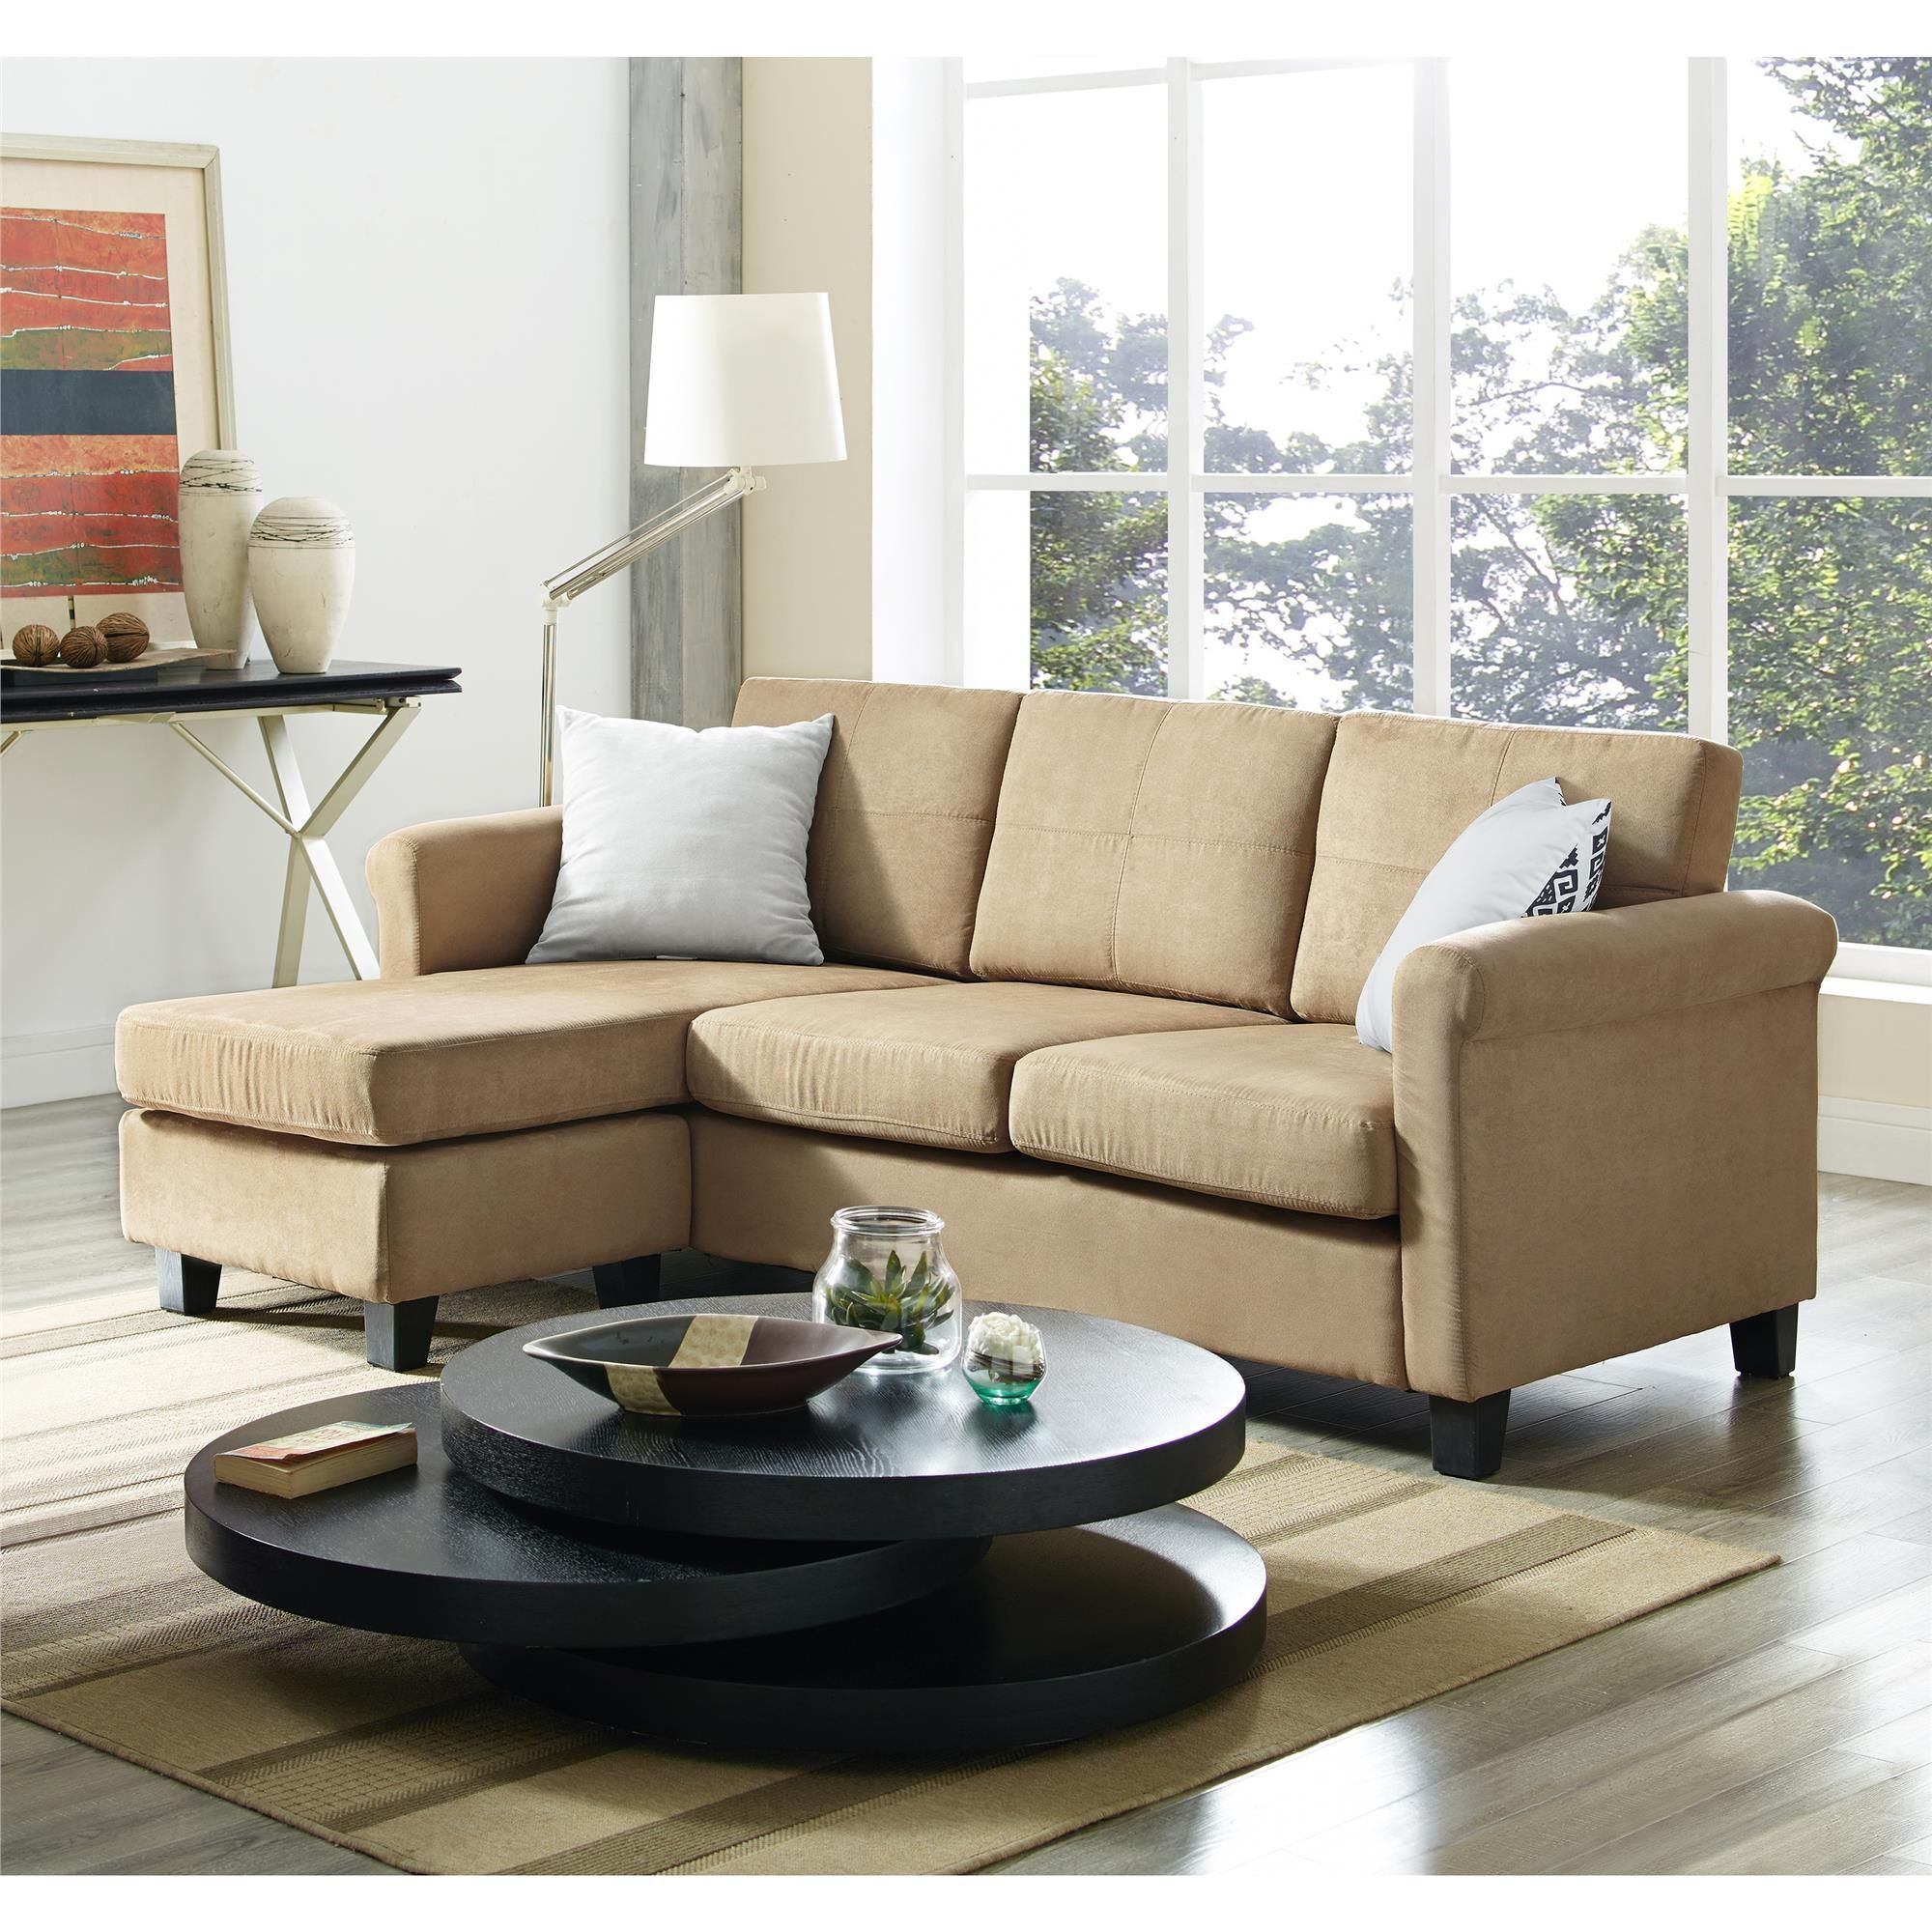 Attirant Have Comfortable And Stylish Seating Available With The Small Spaces  Configurable Sectional Sofa. This Configurable Sofa Combines A Rolled Arm  Design With ...